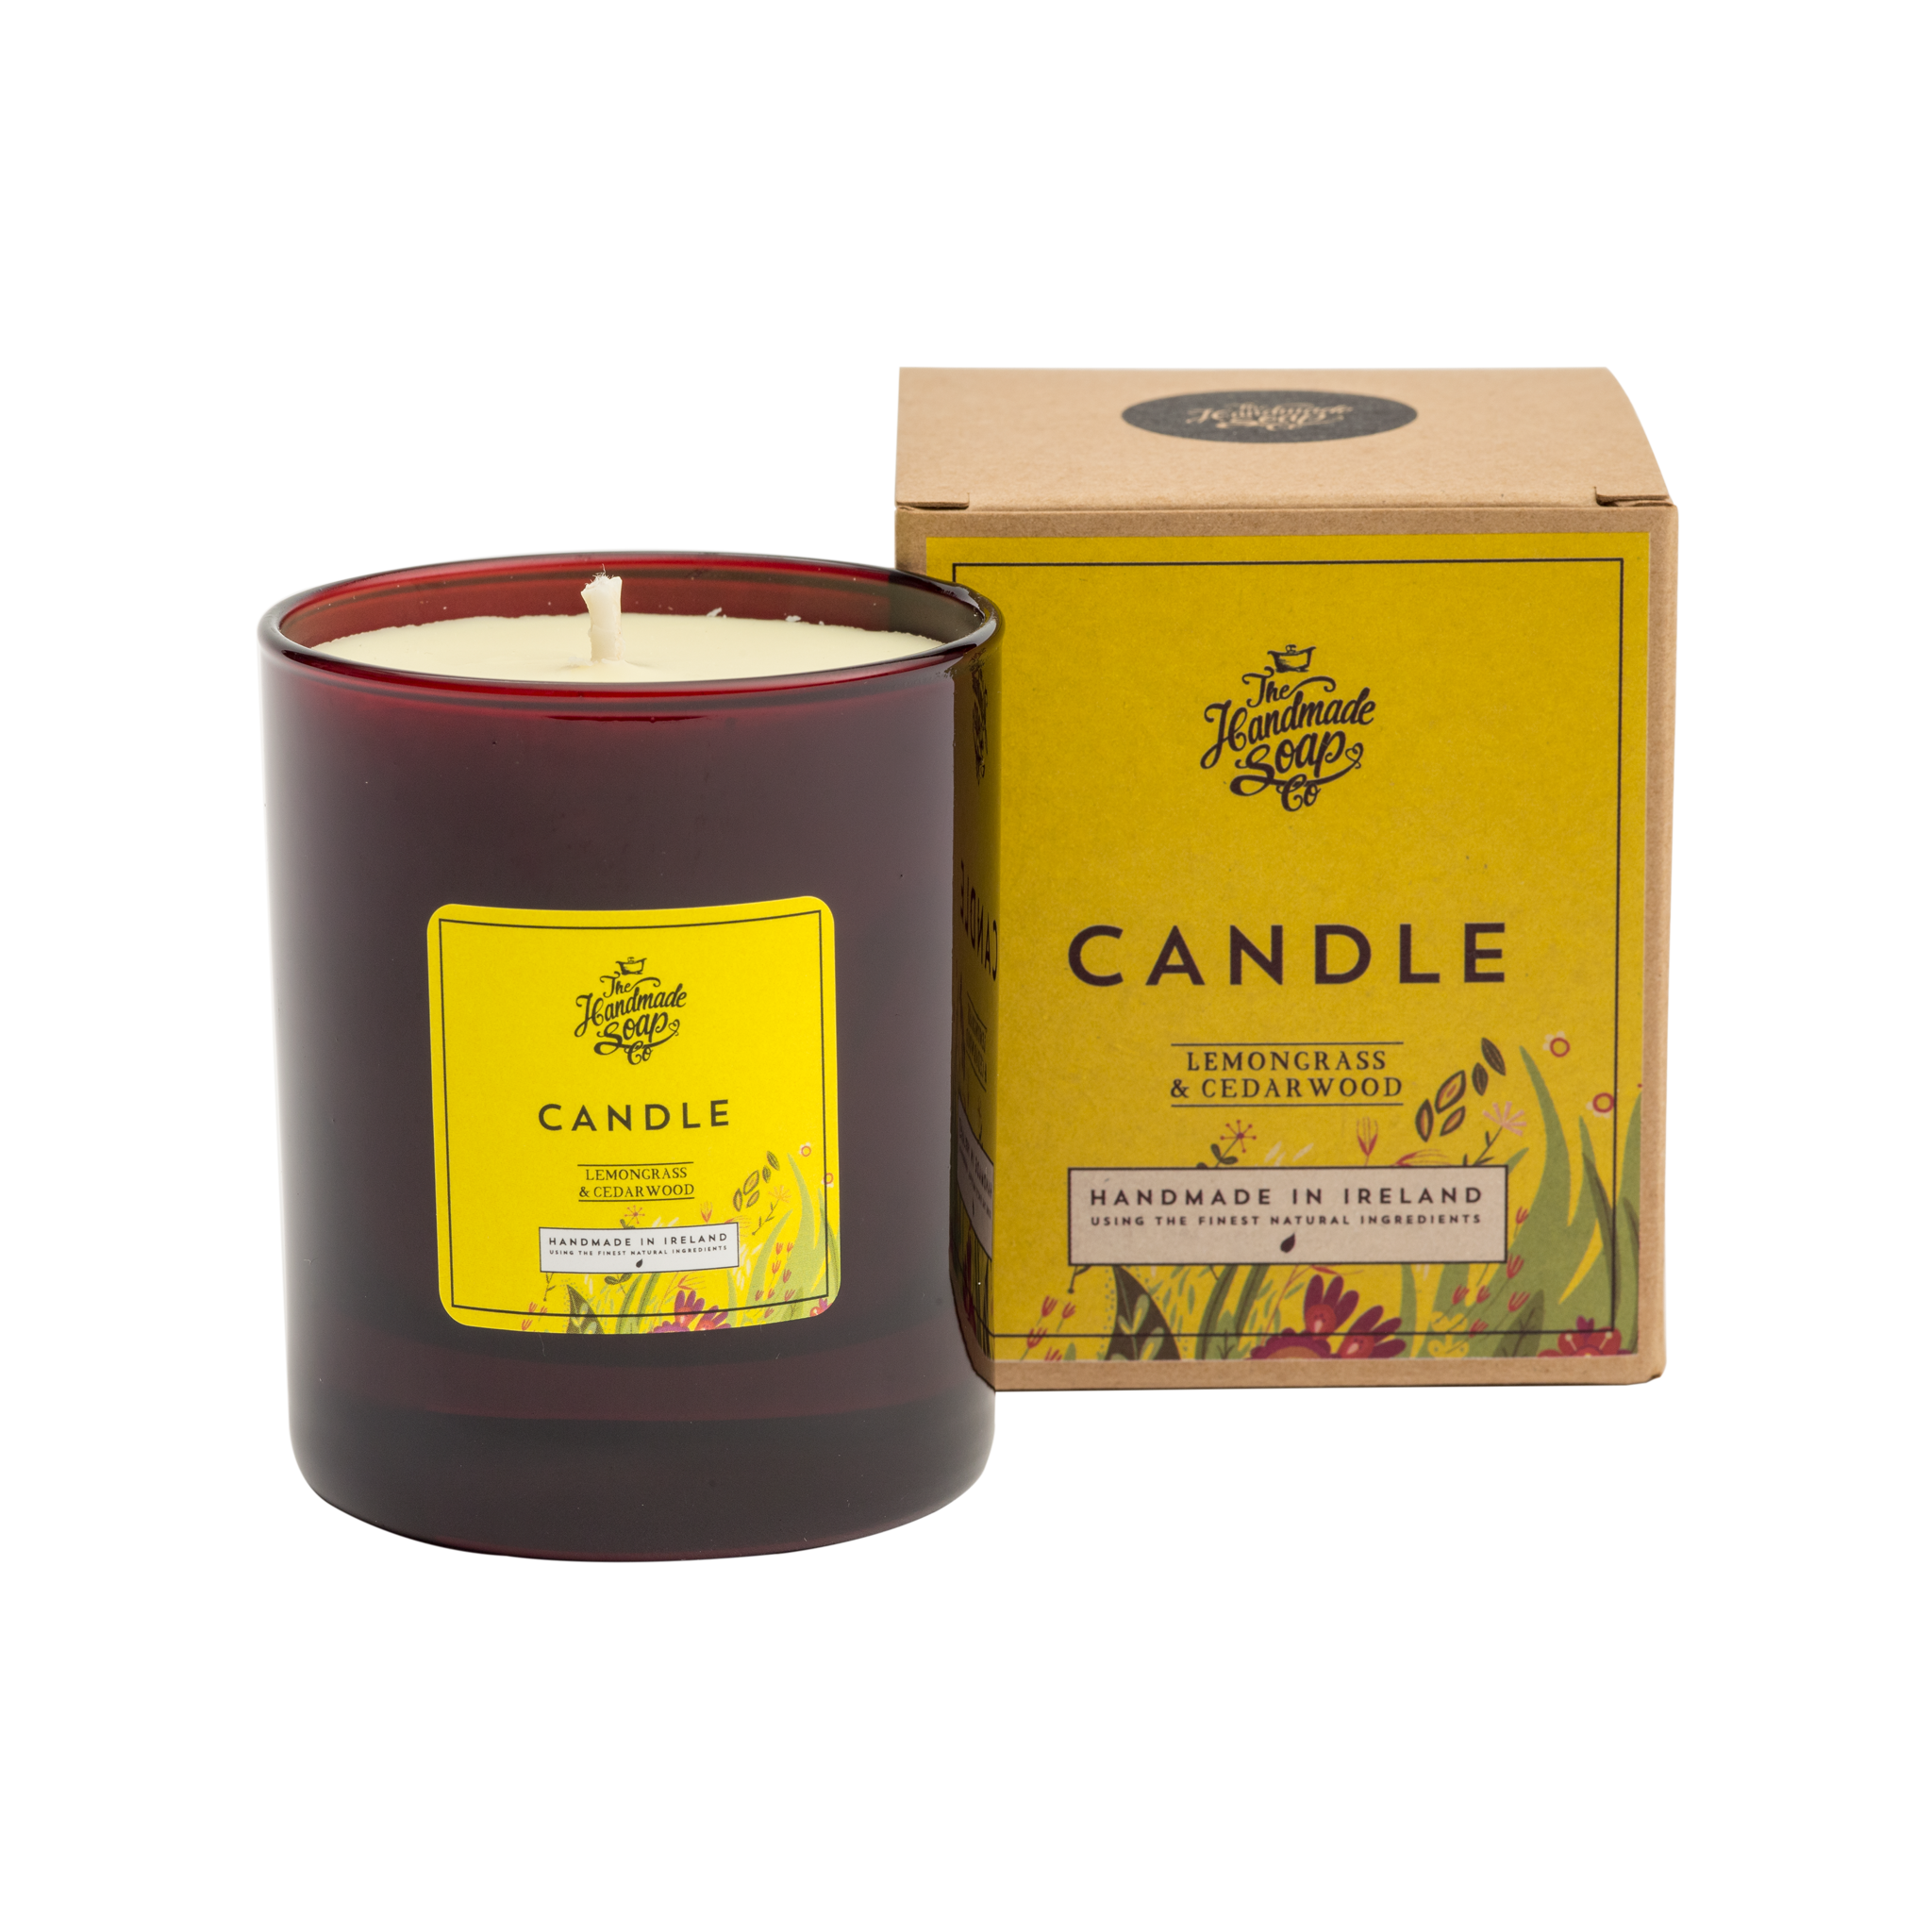 Natural soy wax candles png. Candle scented with lemongrass